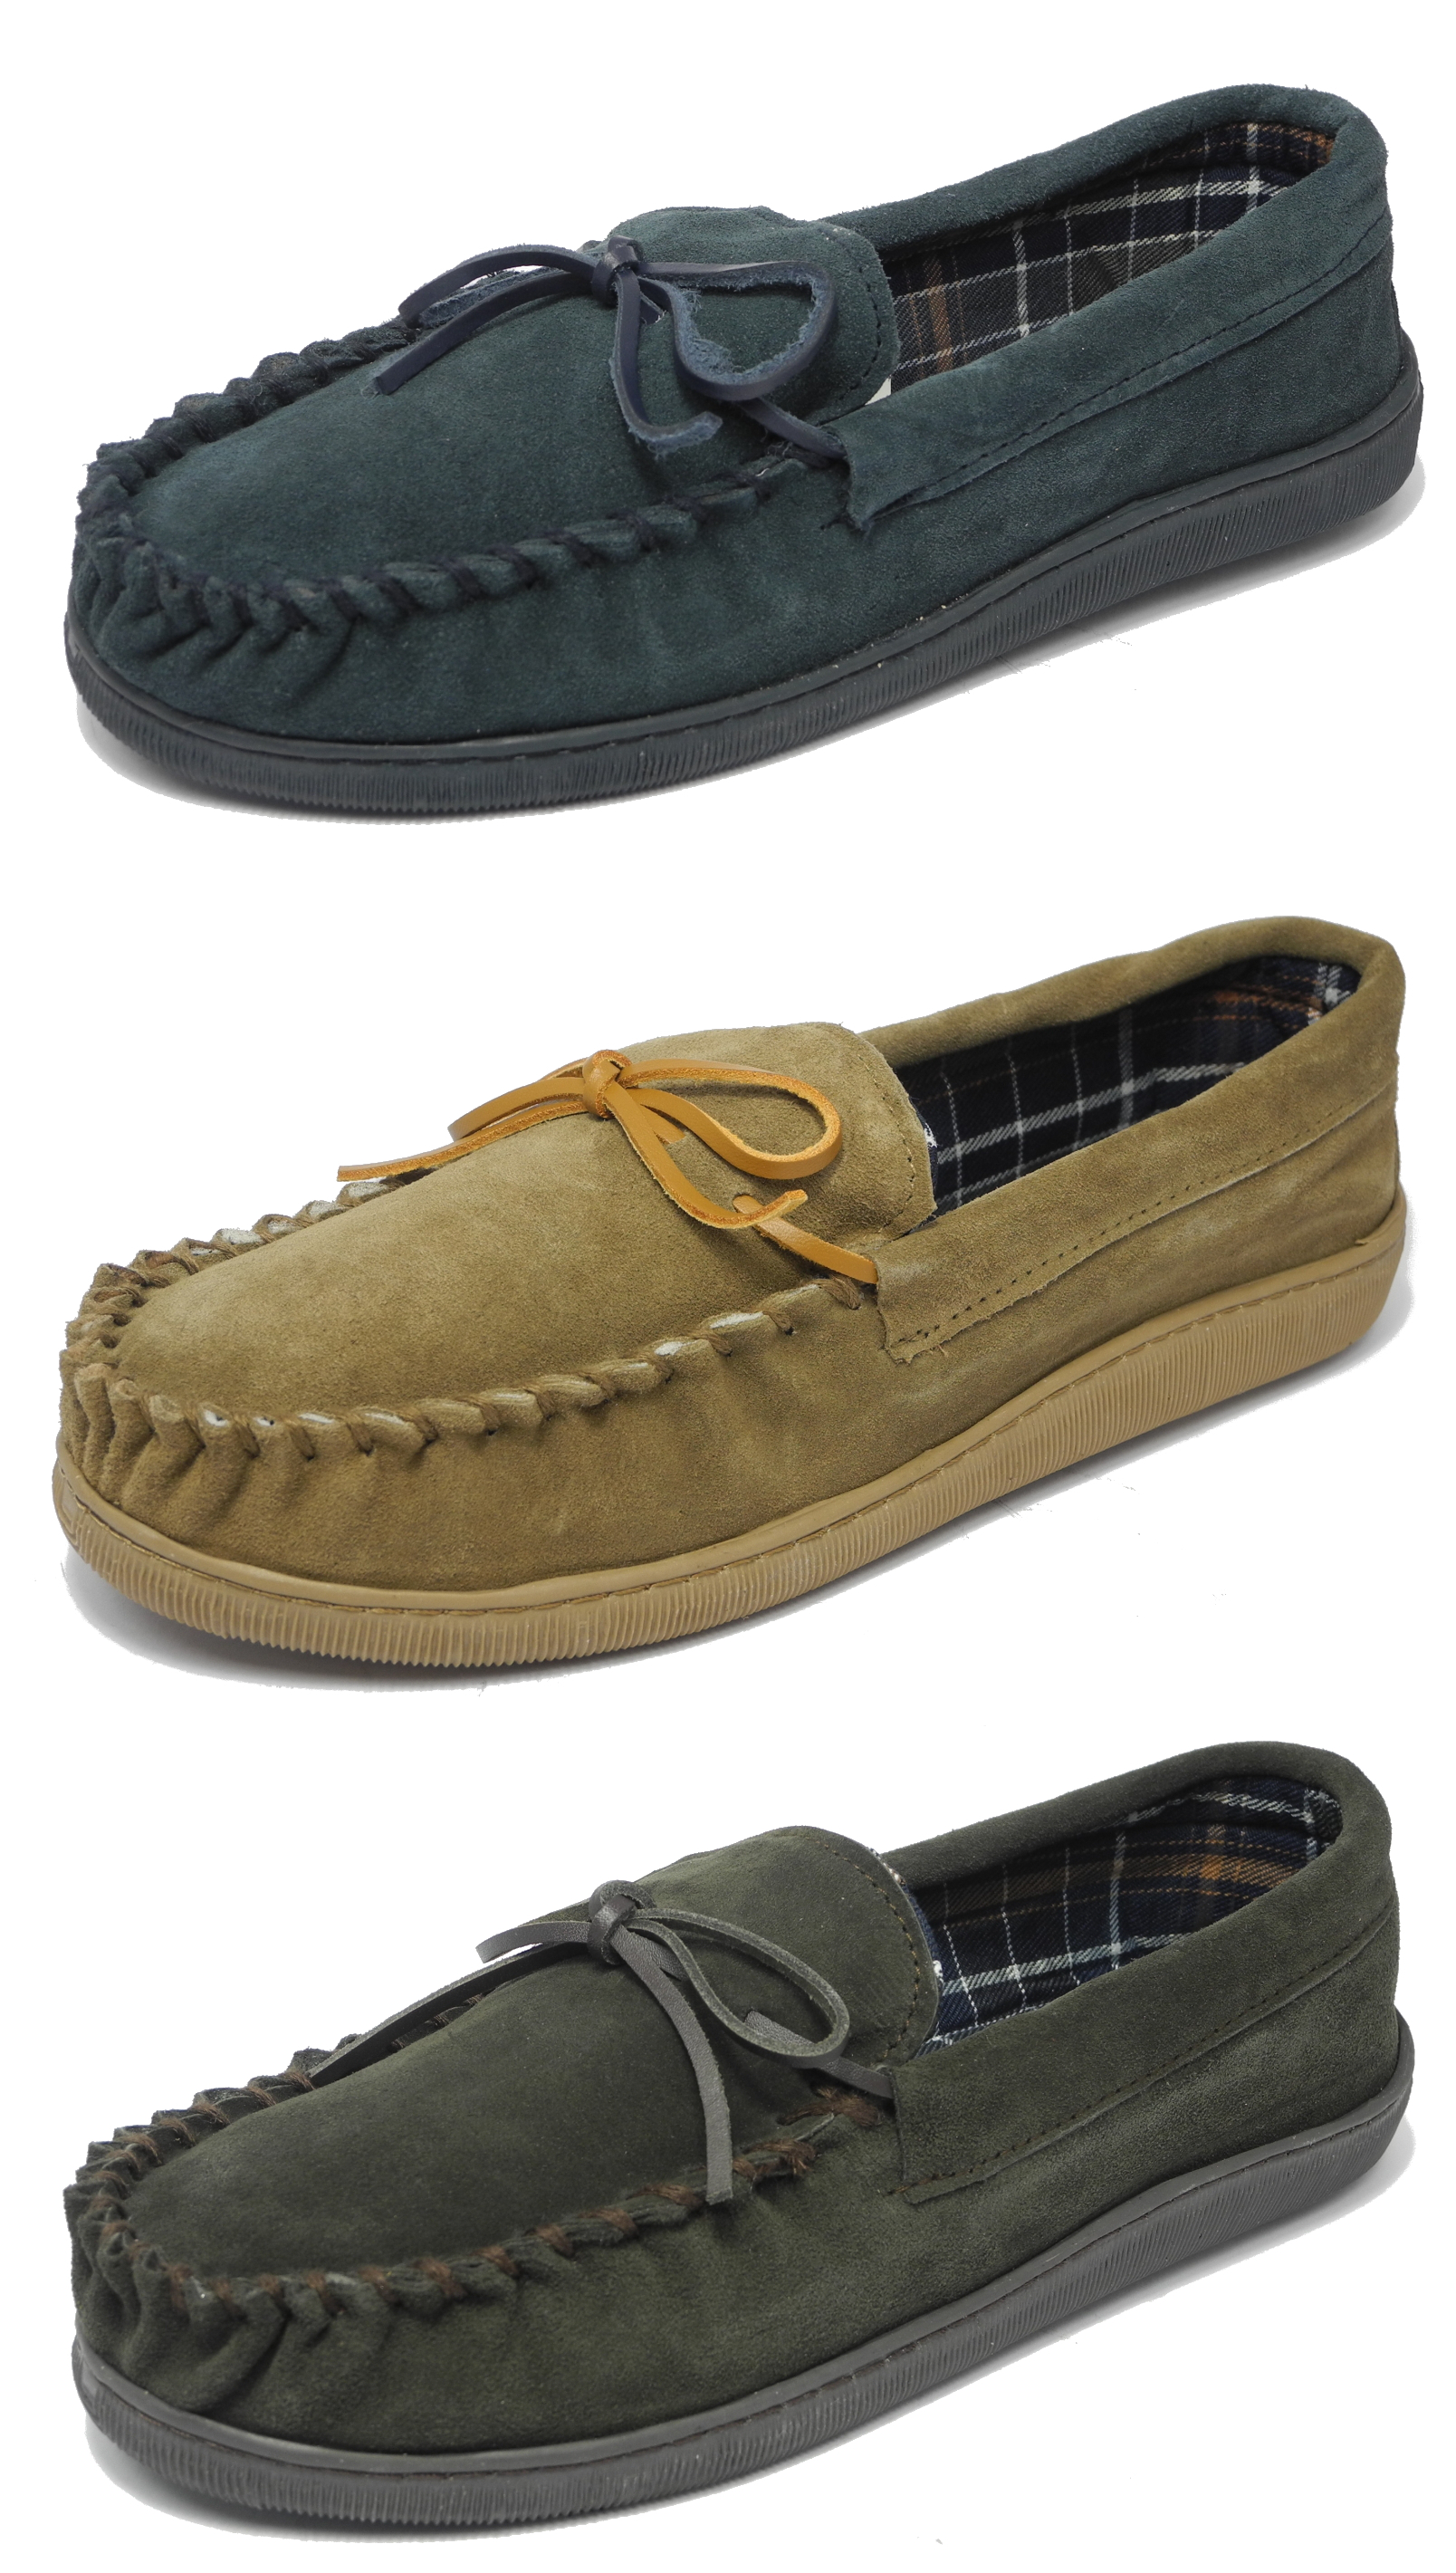 68a756fafbfc Mens Sleepers Real Suede Wide Fit Leather Moccasin Slippers BLUE ...